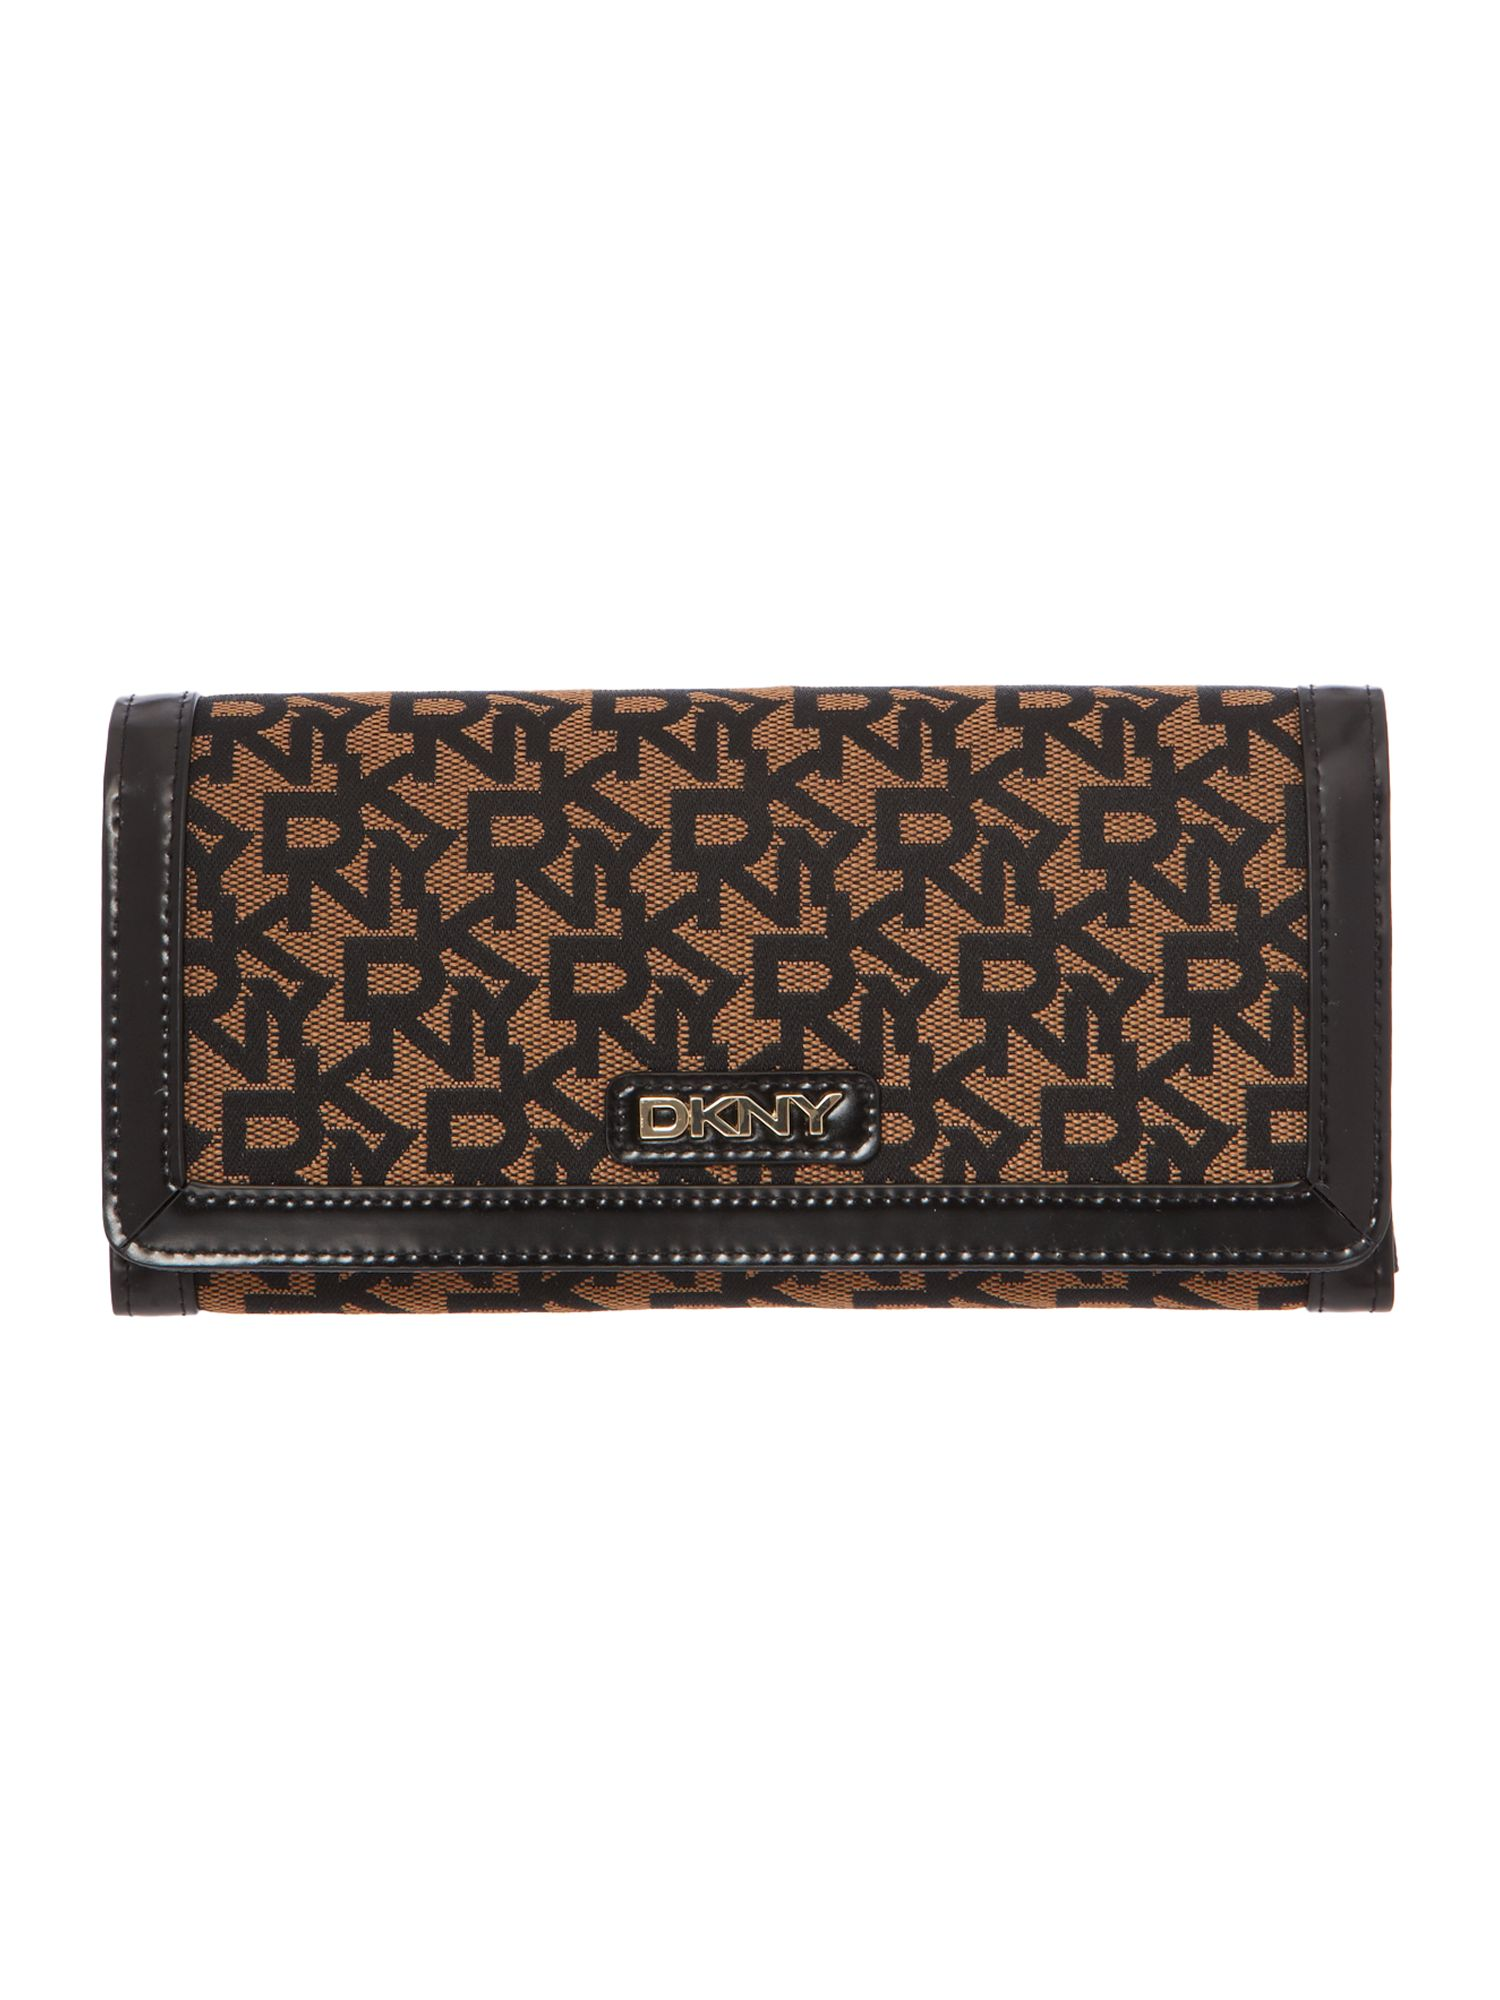 Black large flap over purse